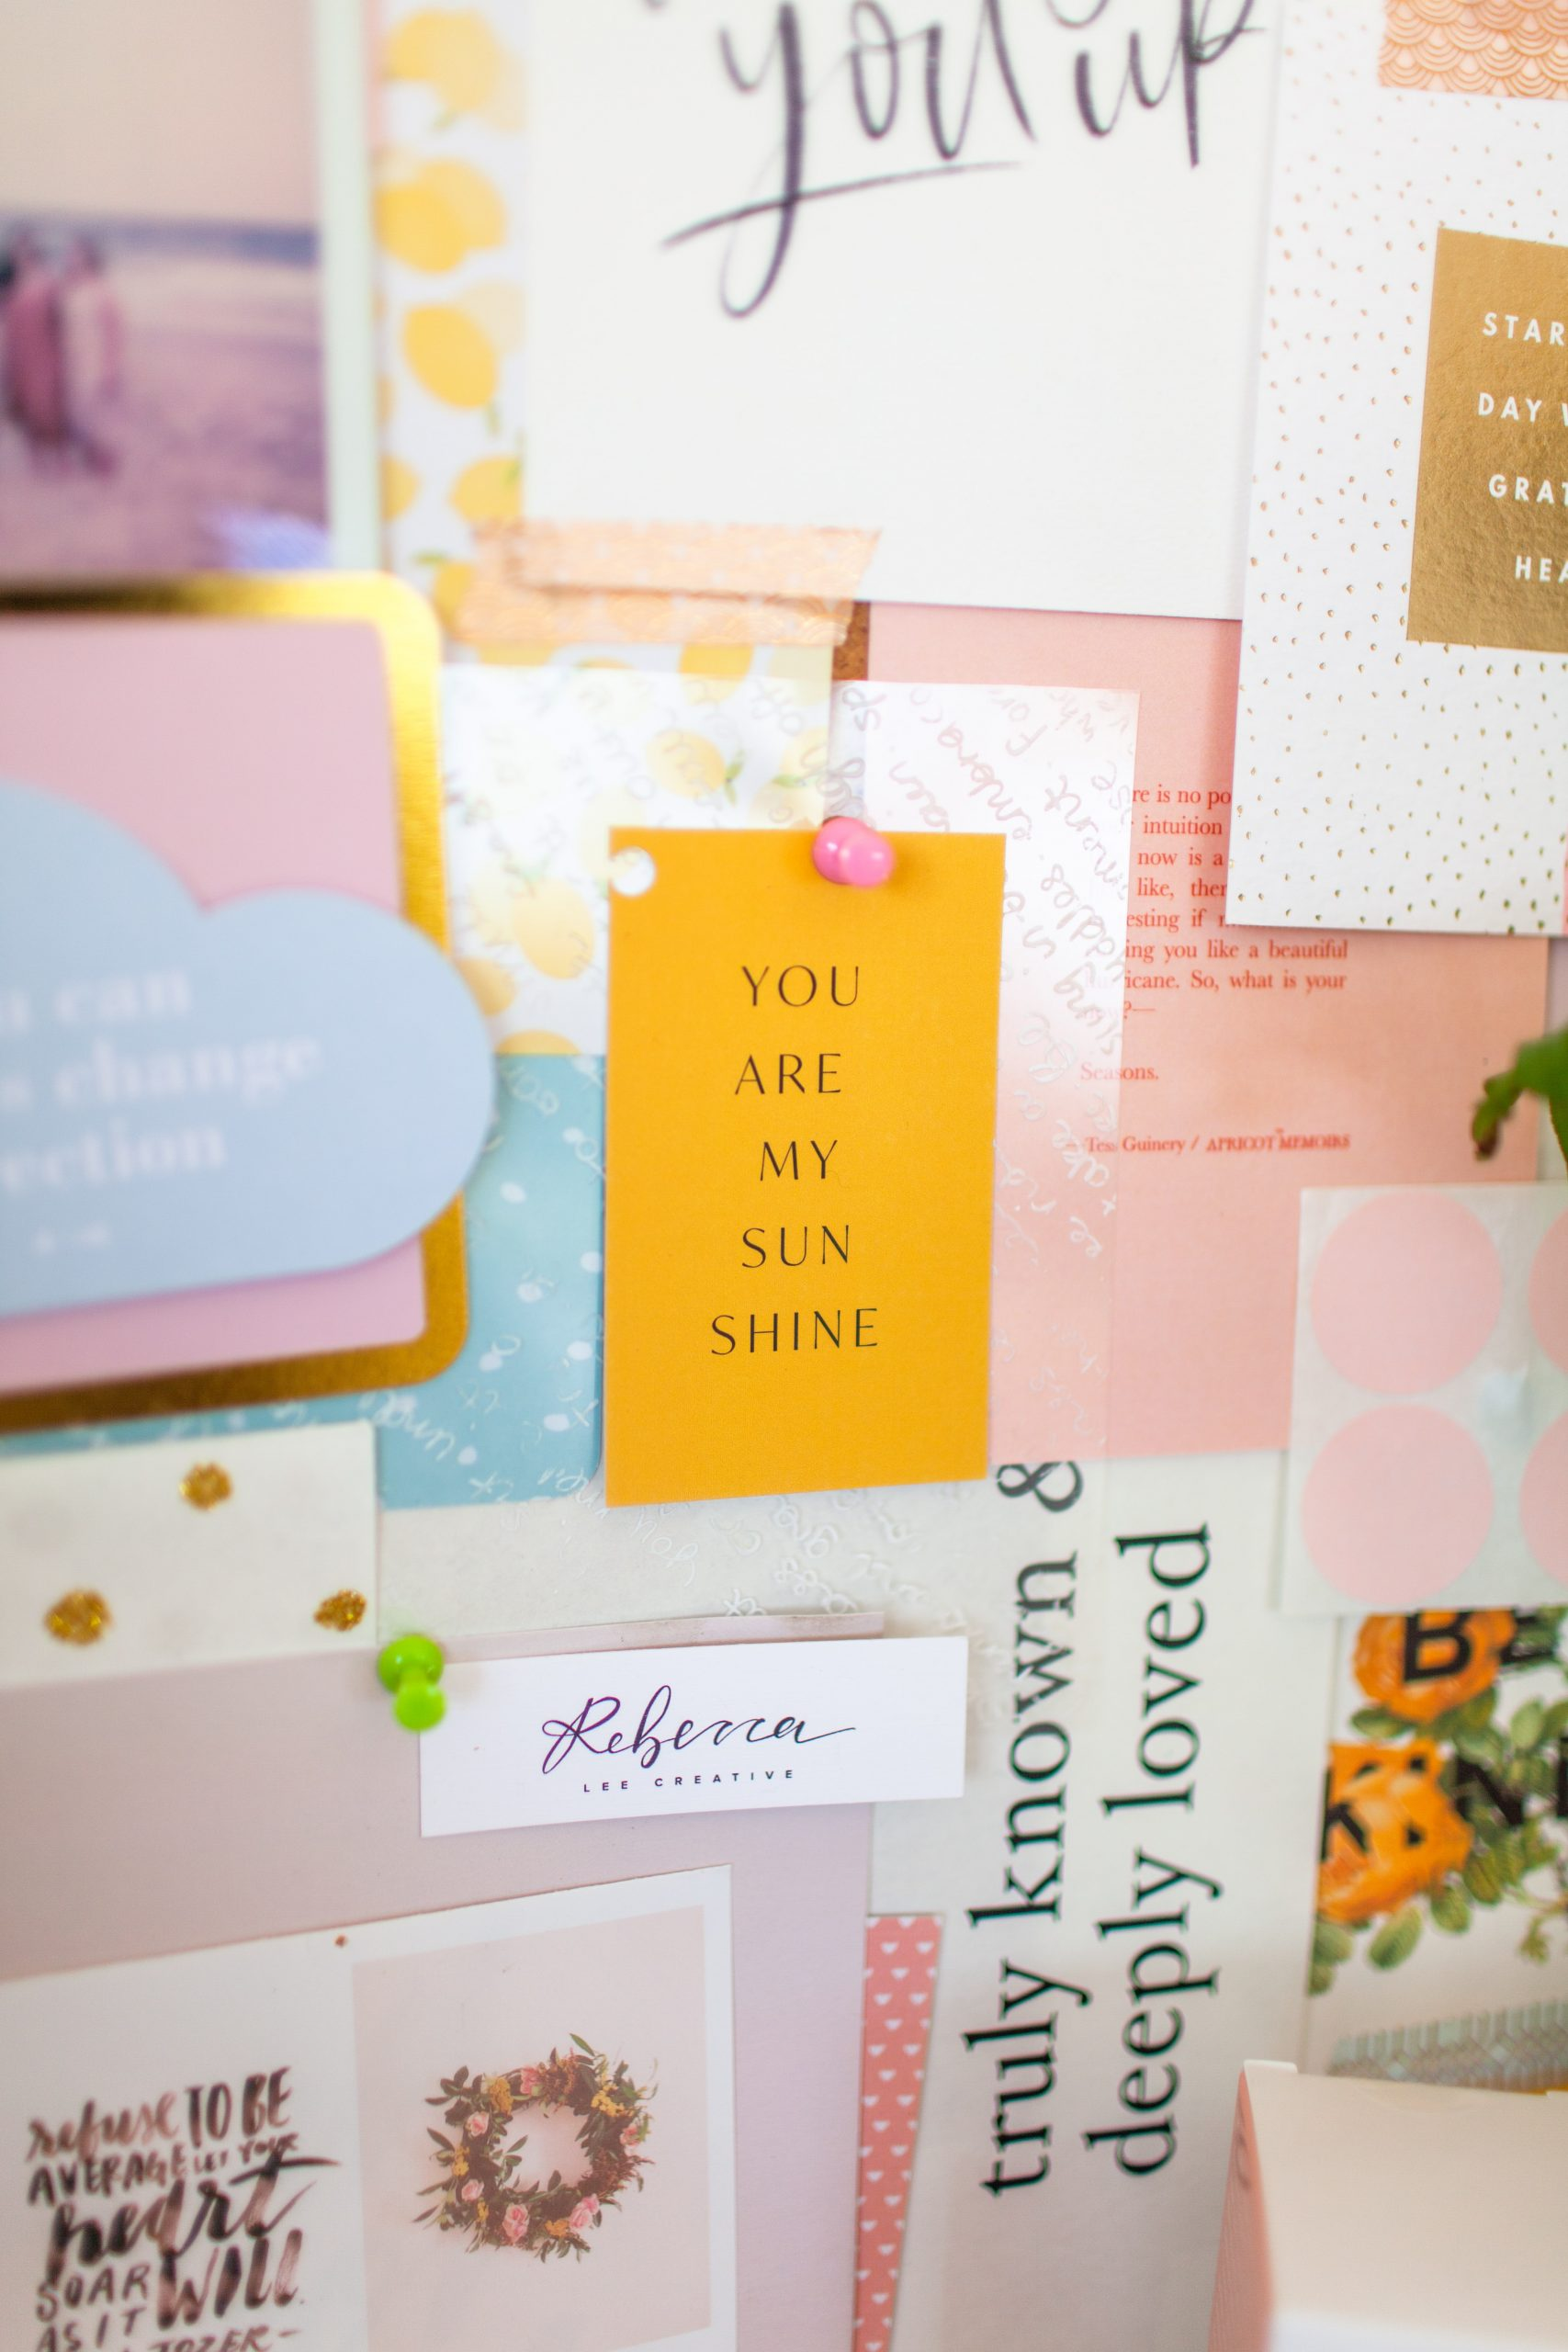 5 Ways To Make Exciting Greeting Cards- Tips That Actually Work!